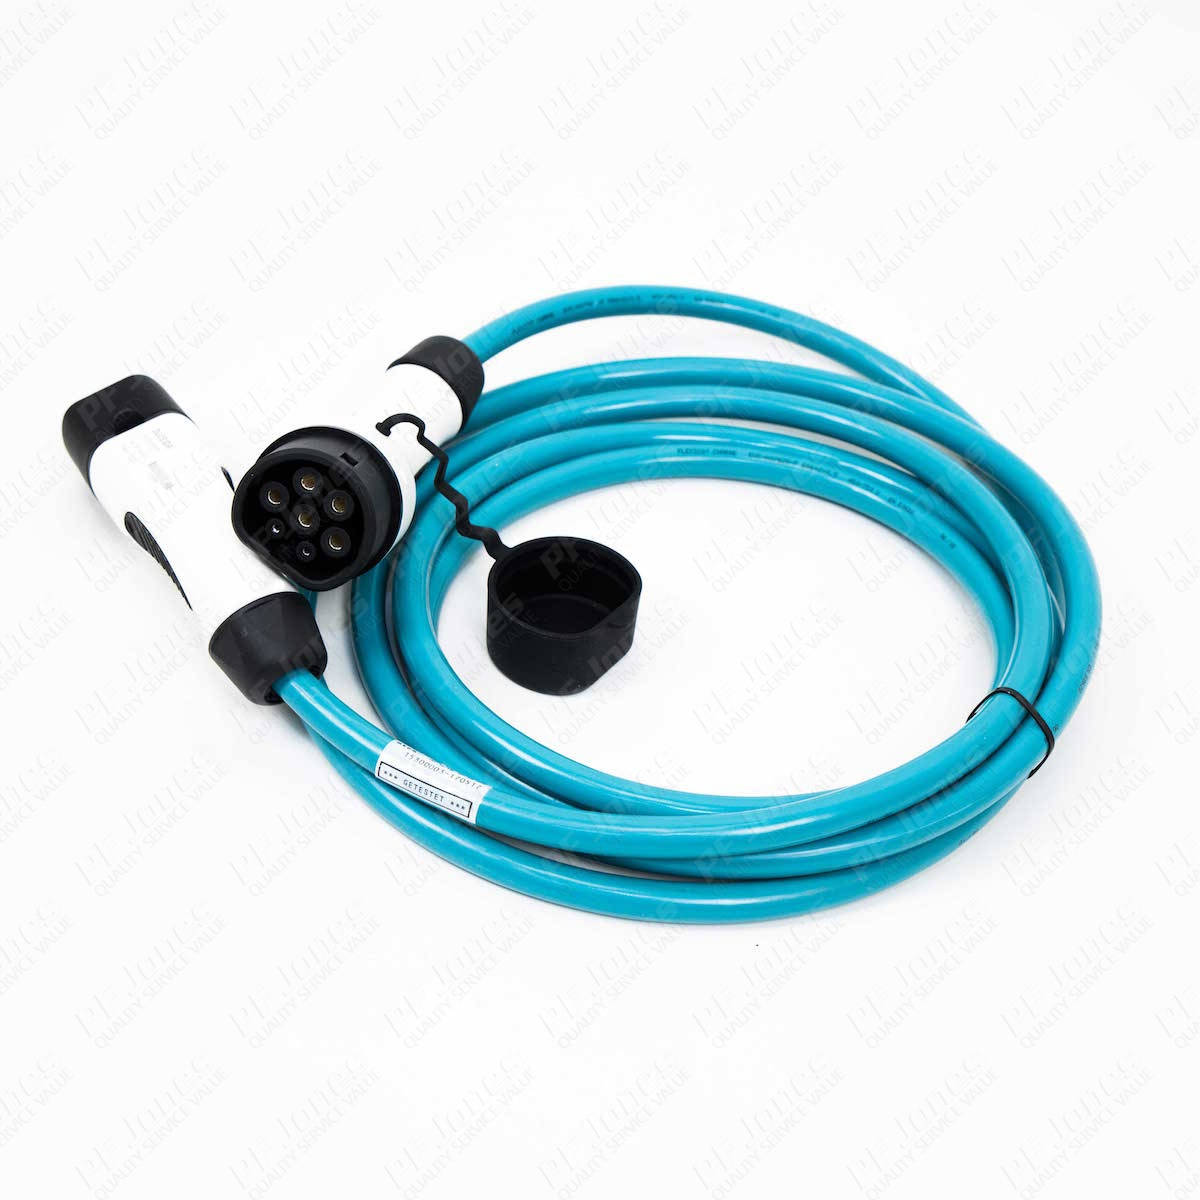 5m (Straight) 20 Amp Type 2 to Type 2 EV Charging Cable